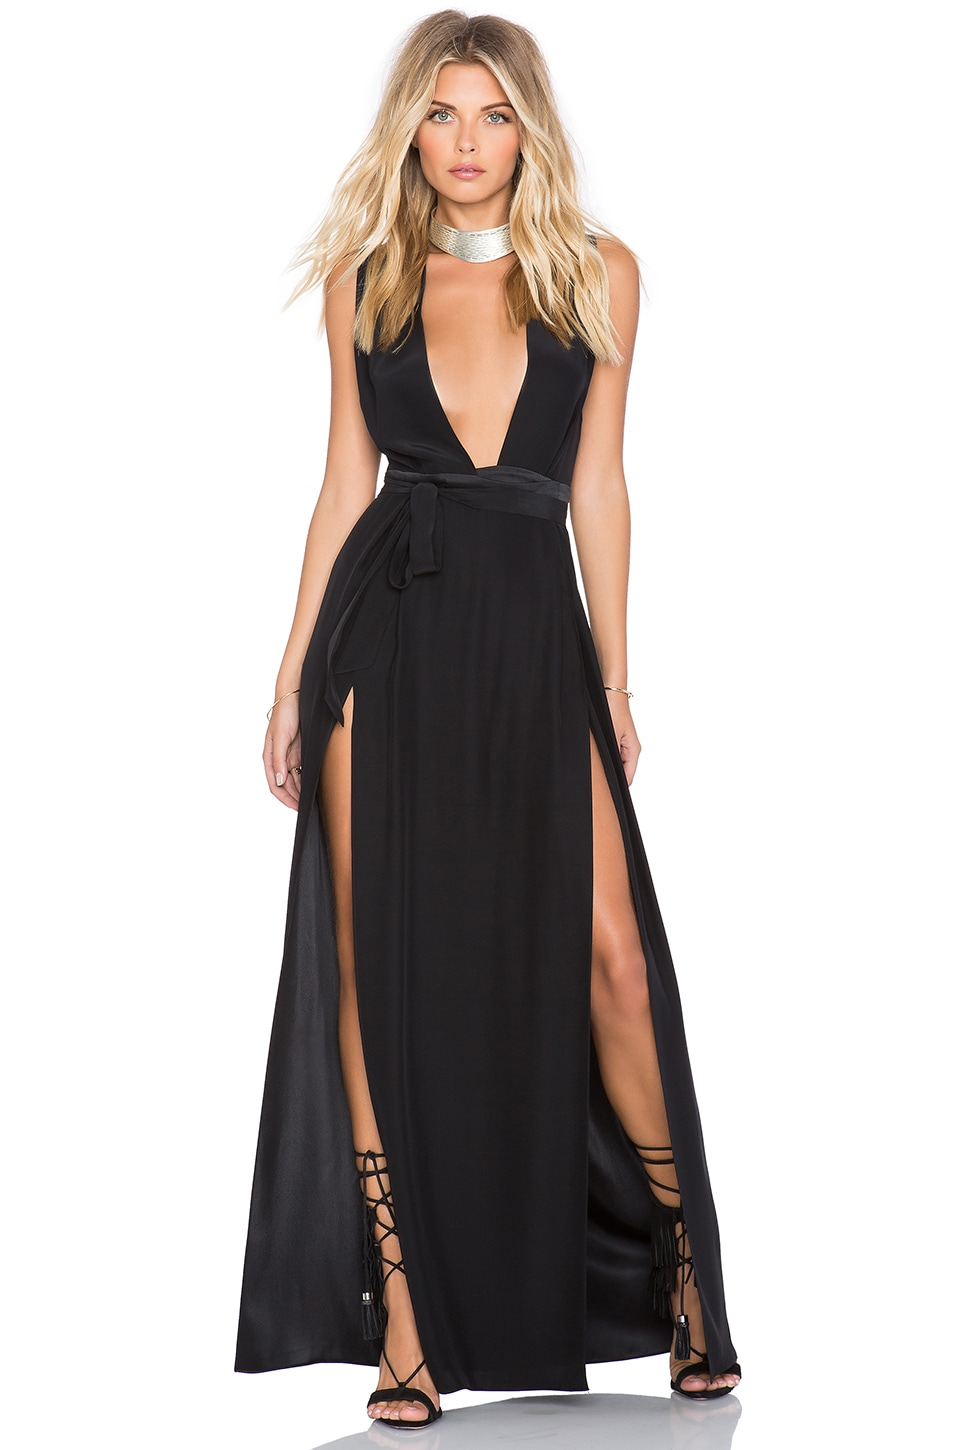 OLCAY GULSEN Double Slit Maxi Dress in Black